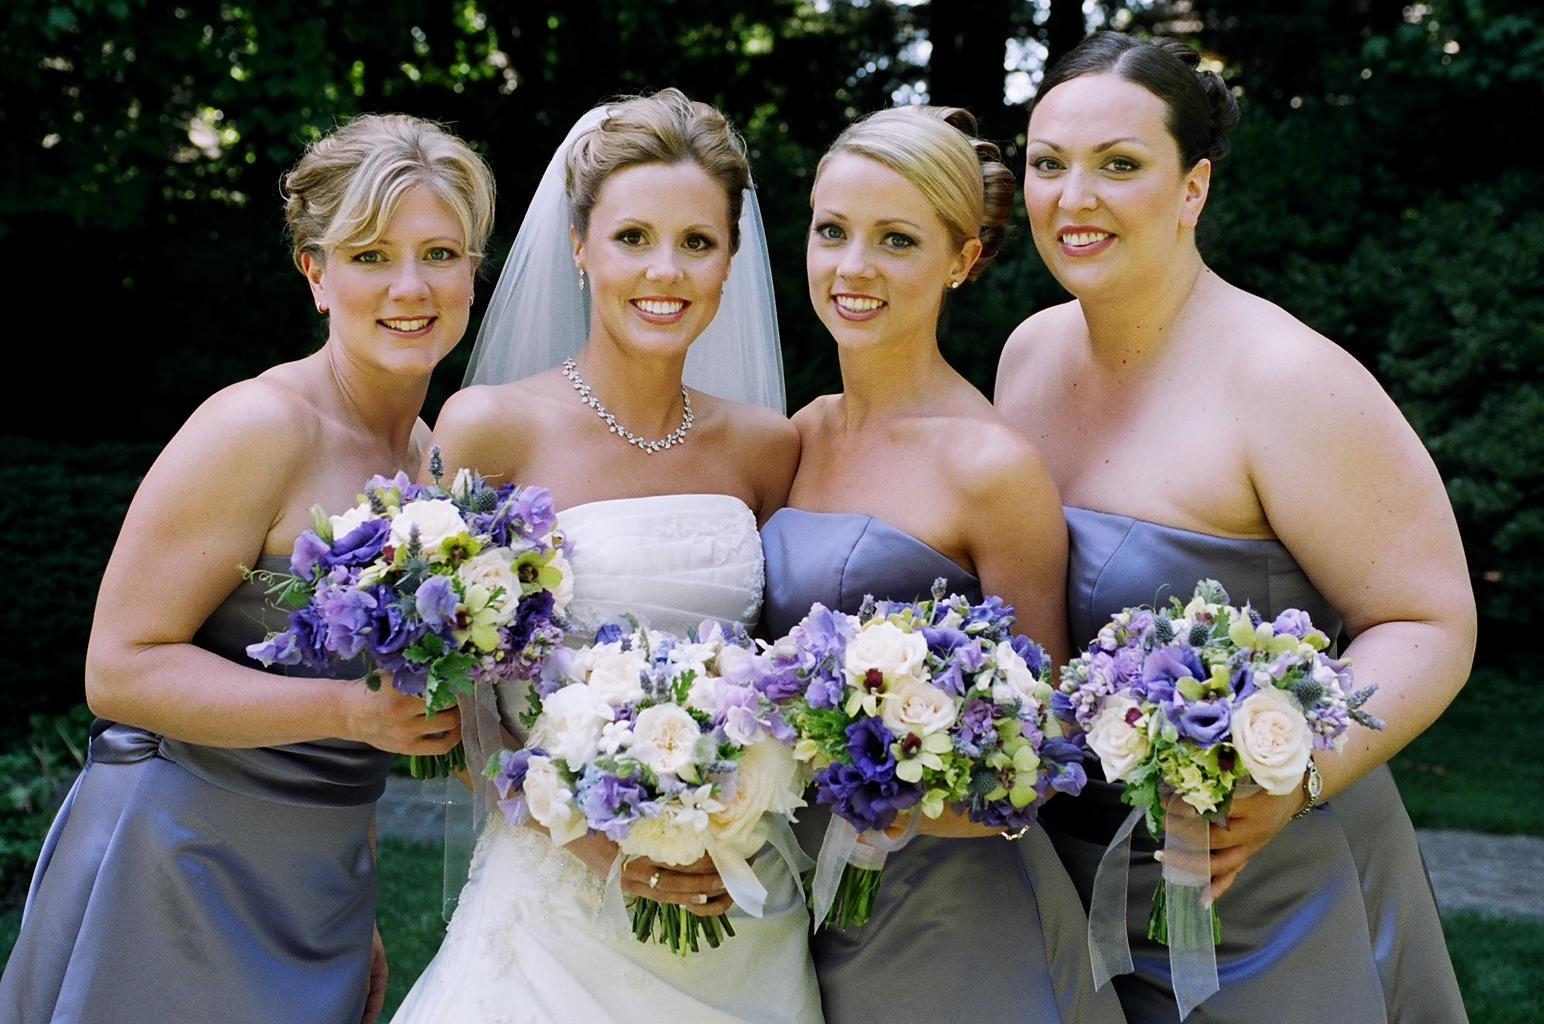 Flowers & Decor, Bridesmaids, Bridesmaids Dresses, Fashion, purple, Bridesmaid Bouquets, Flowers, Flower Wedding Dresses